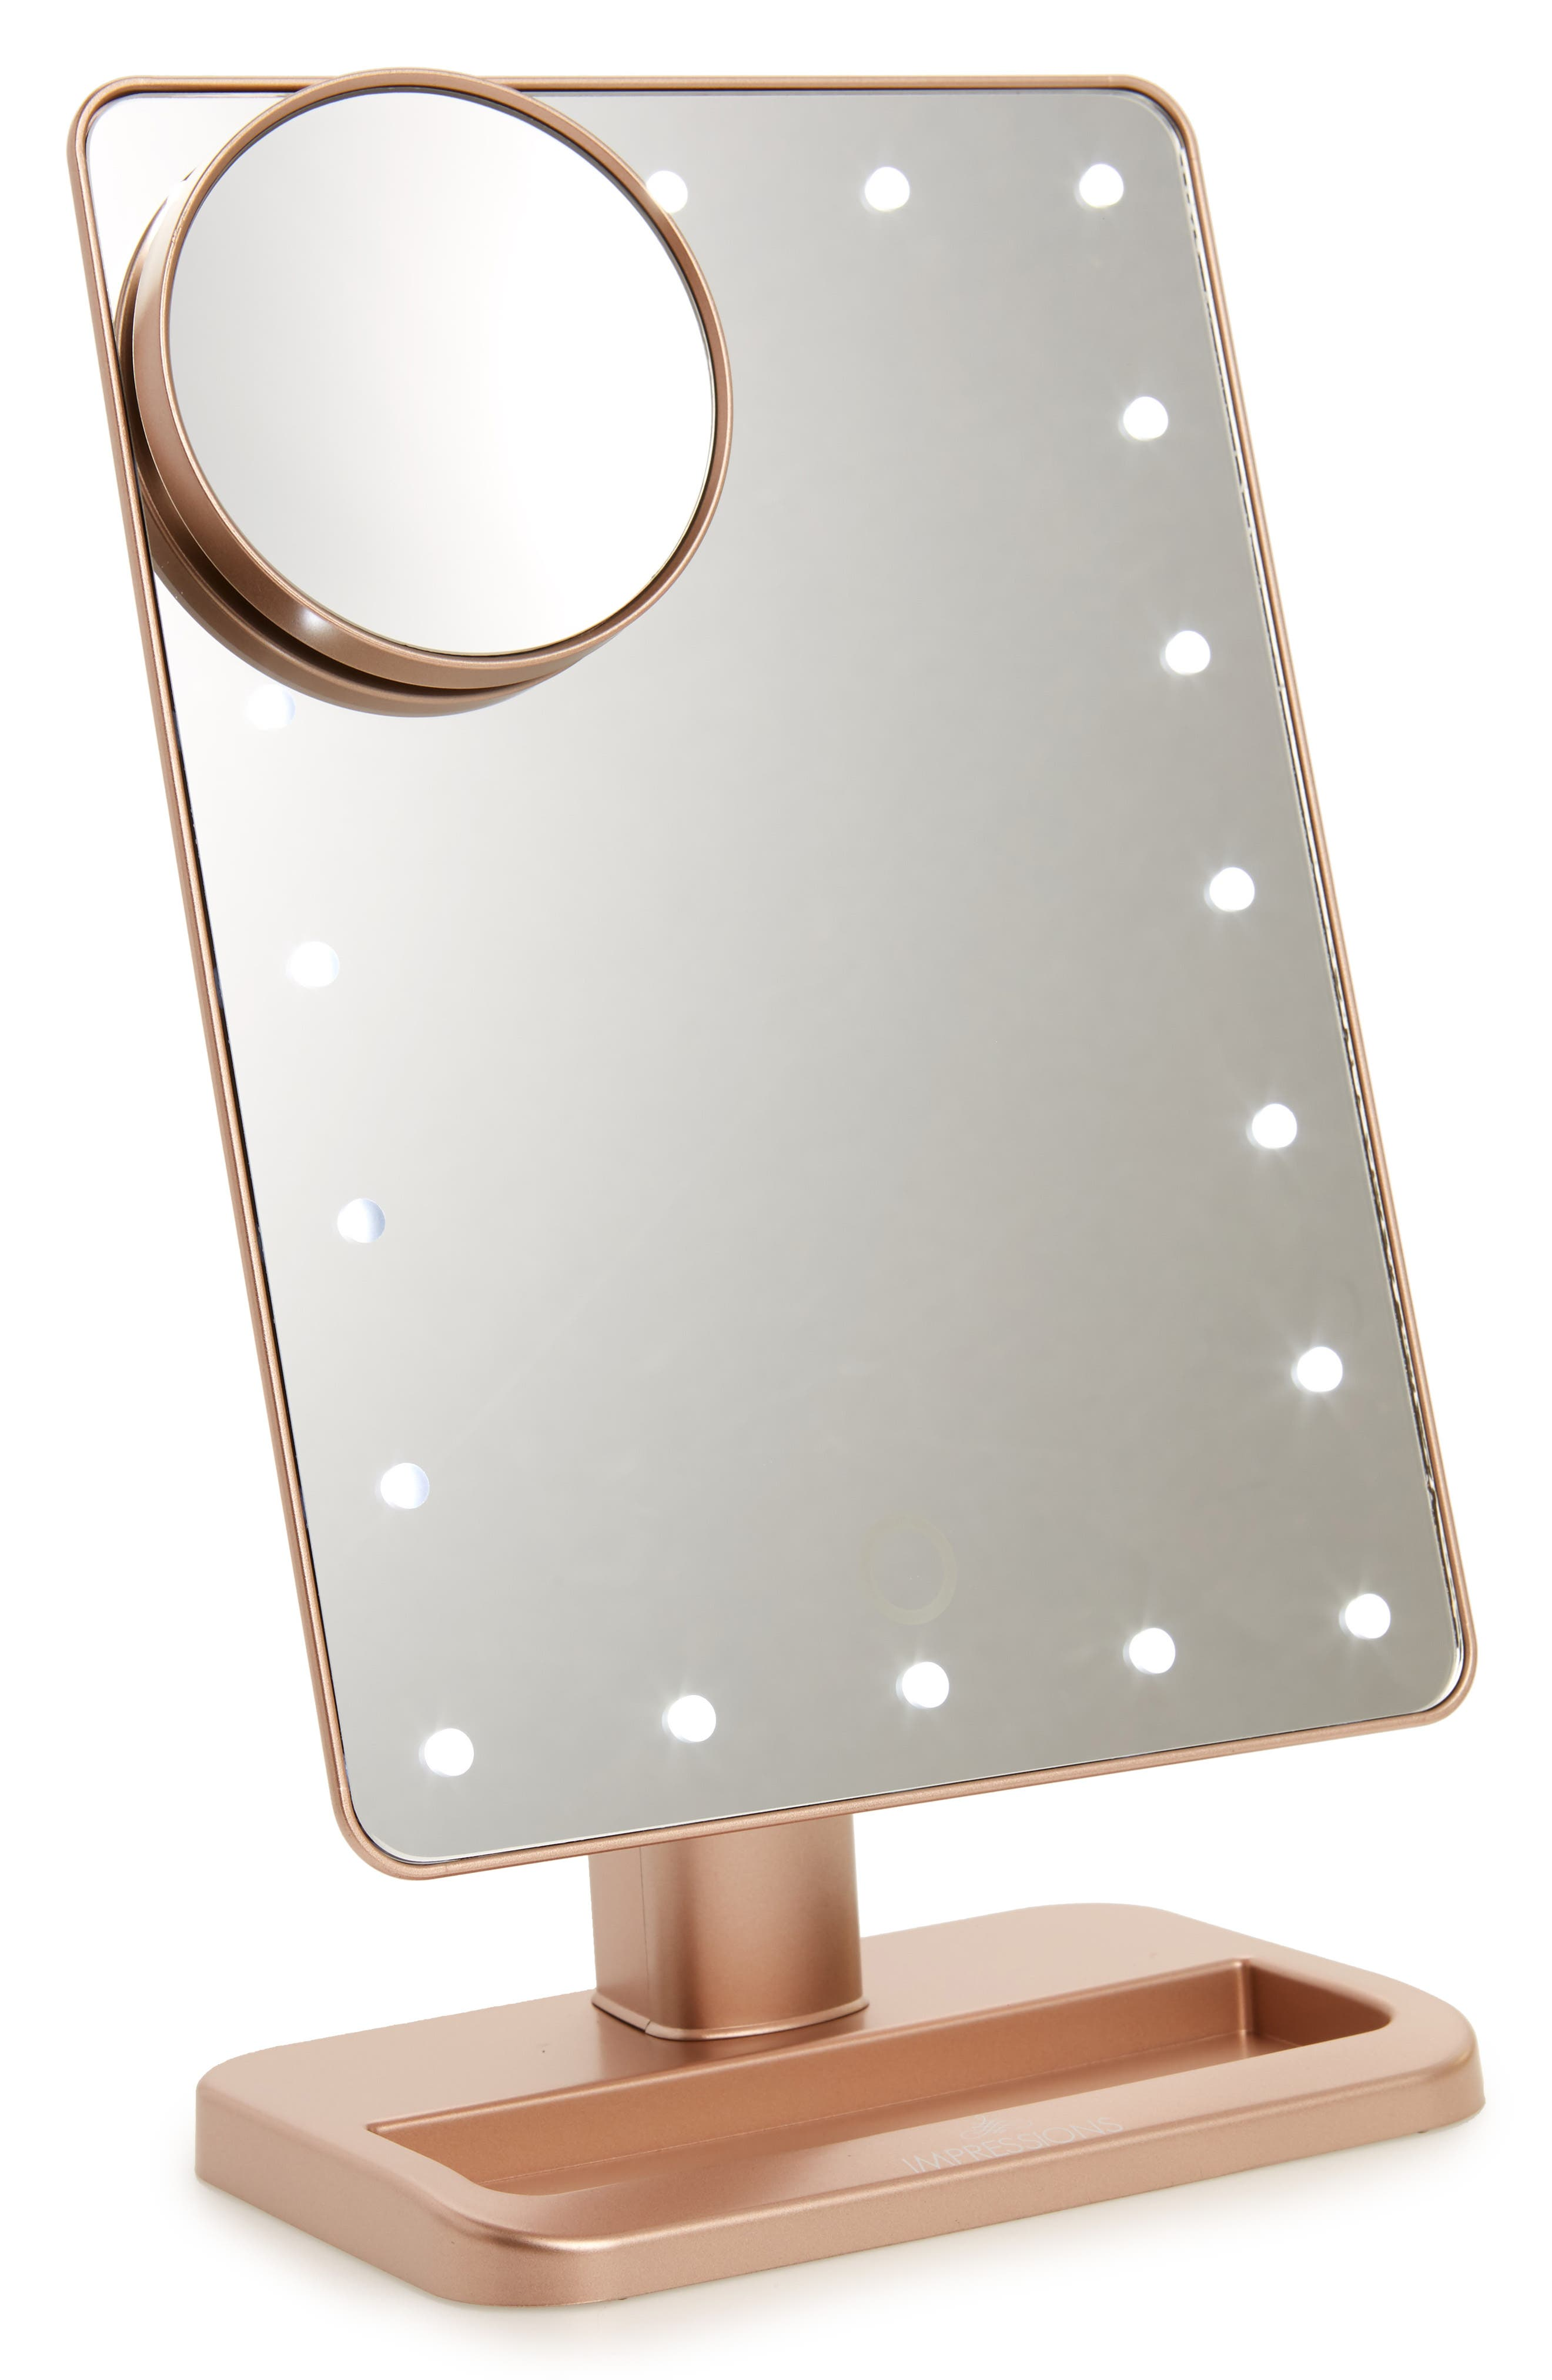 Alternate Image 1 Selected - Impressions Vanity Co. Touch XL Dimmable LED Makeup Mirror with Removable 5x Mirror